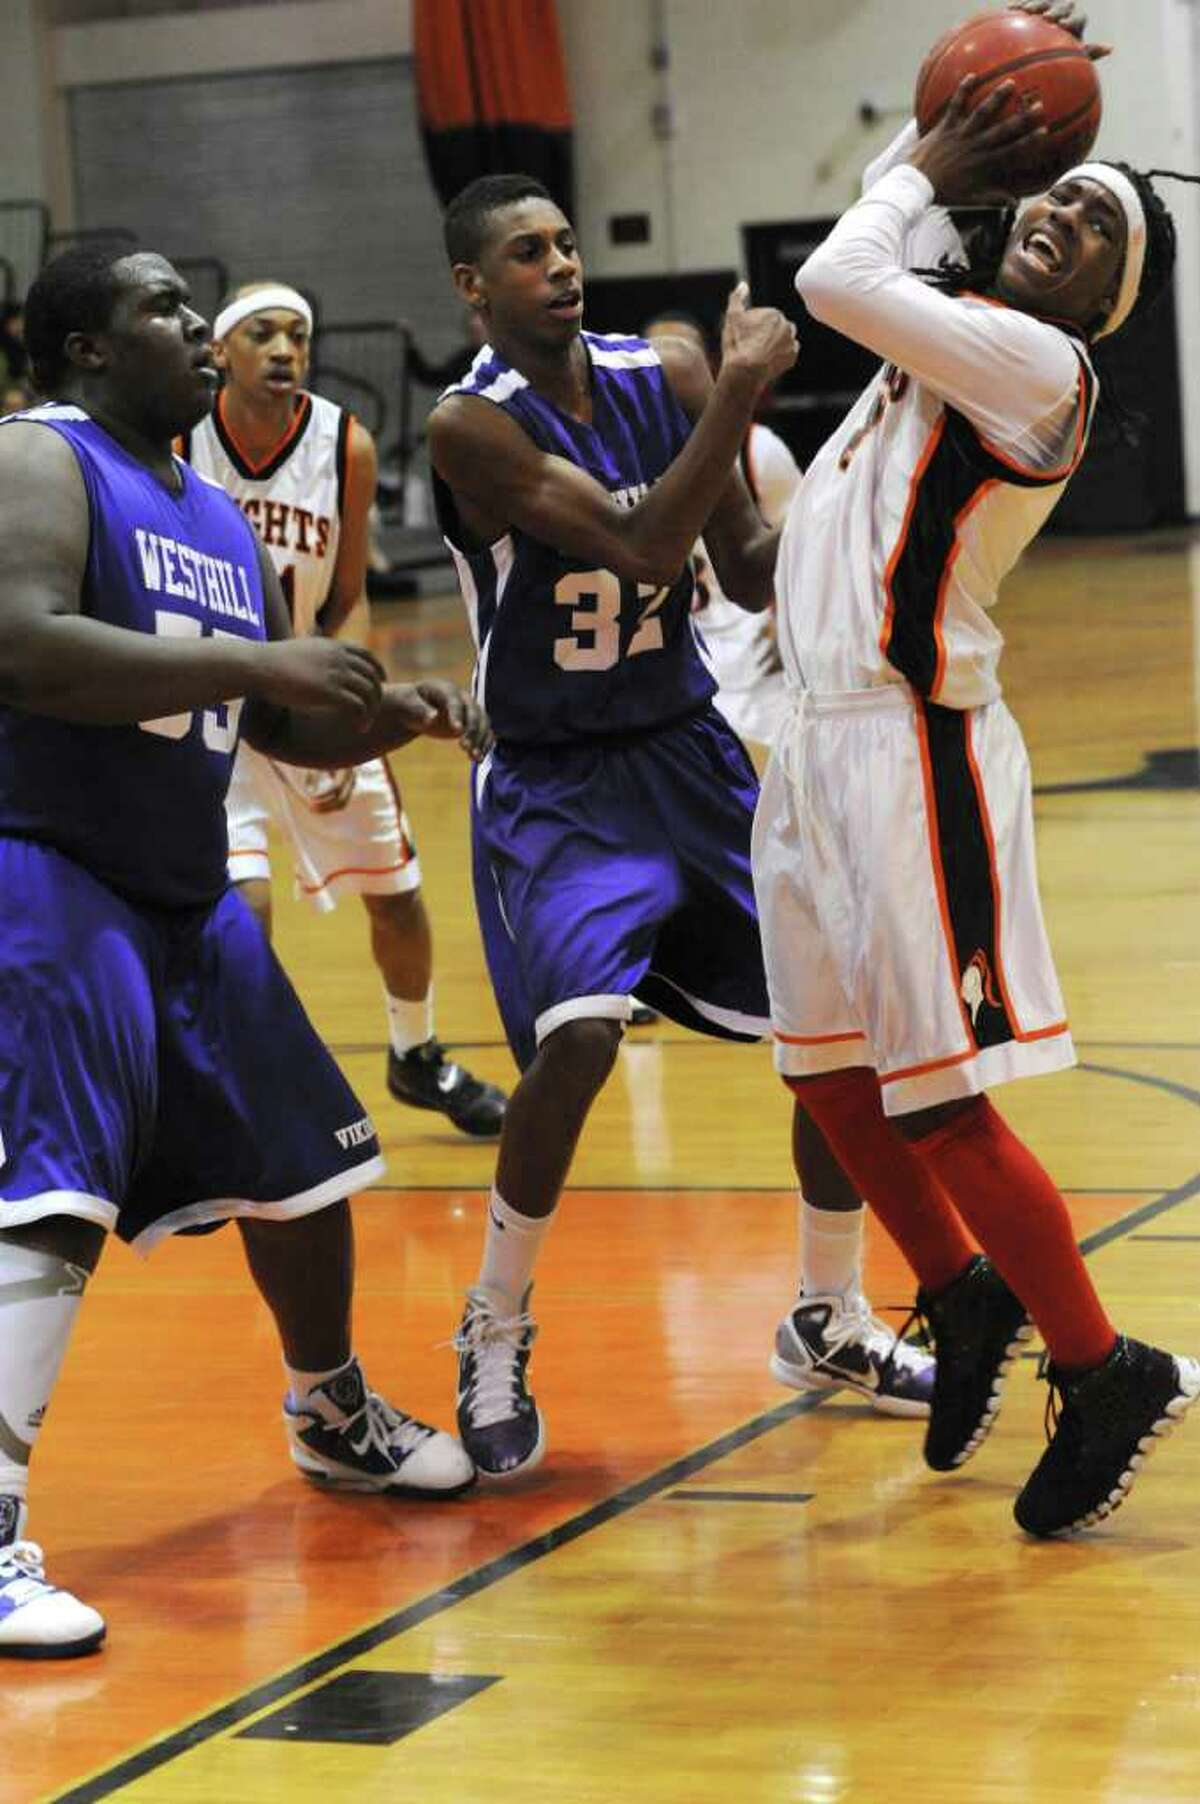 Westhill's Ervin Thompson and Chris Walters and Stamford's Jakai Wilson during Westhill @ Stamford boys basketball in Stamford, Conn. on Monday February 14, 2011. The score was Stamford 55 Westhill 49.